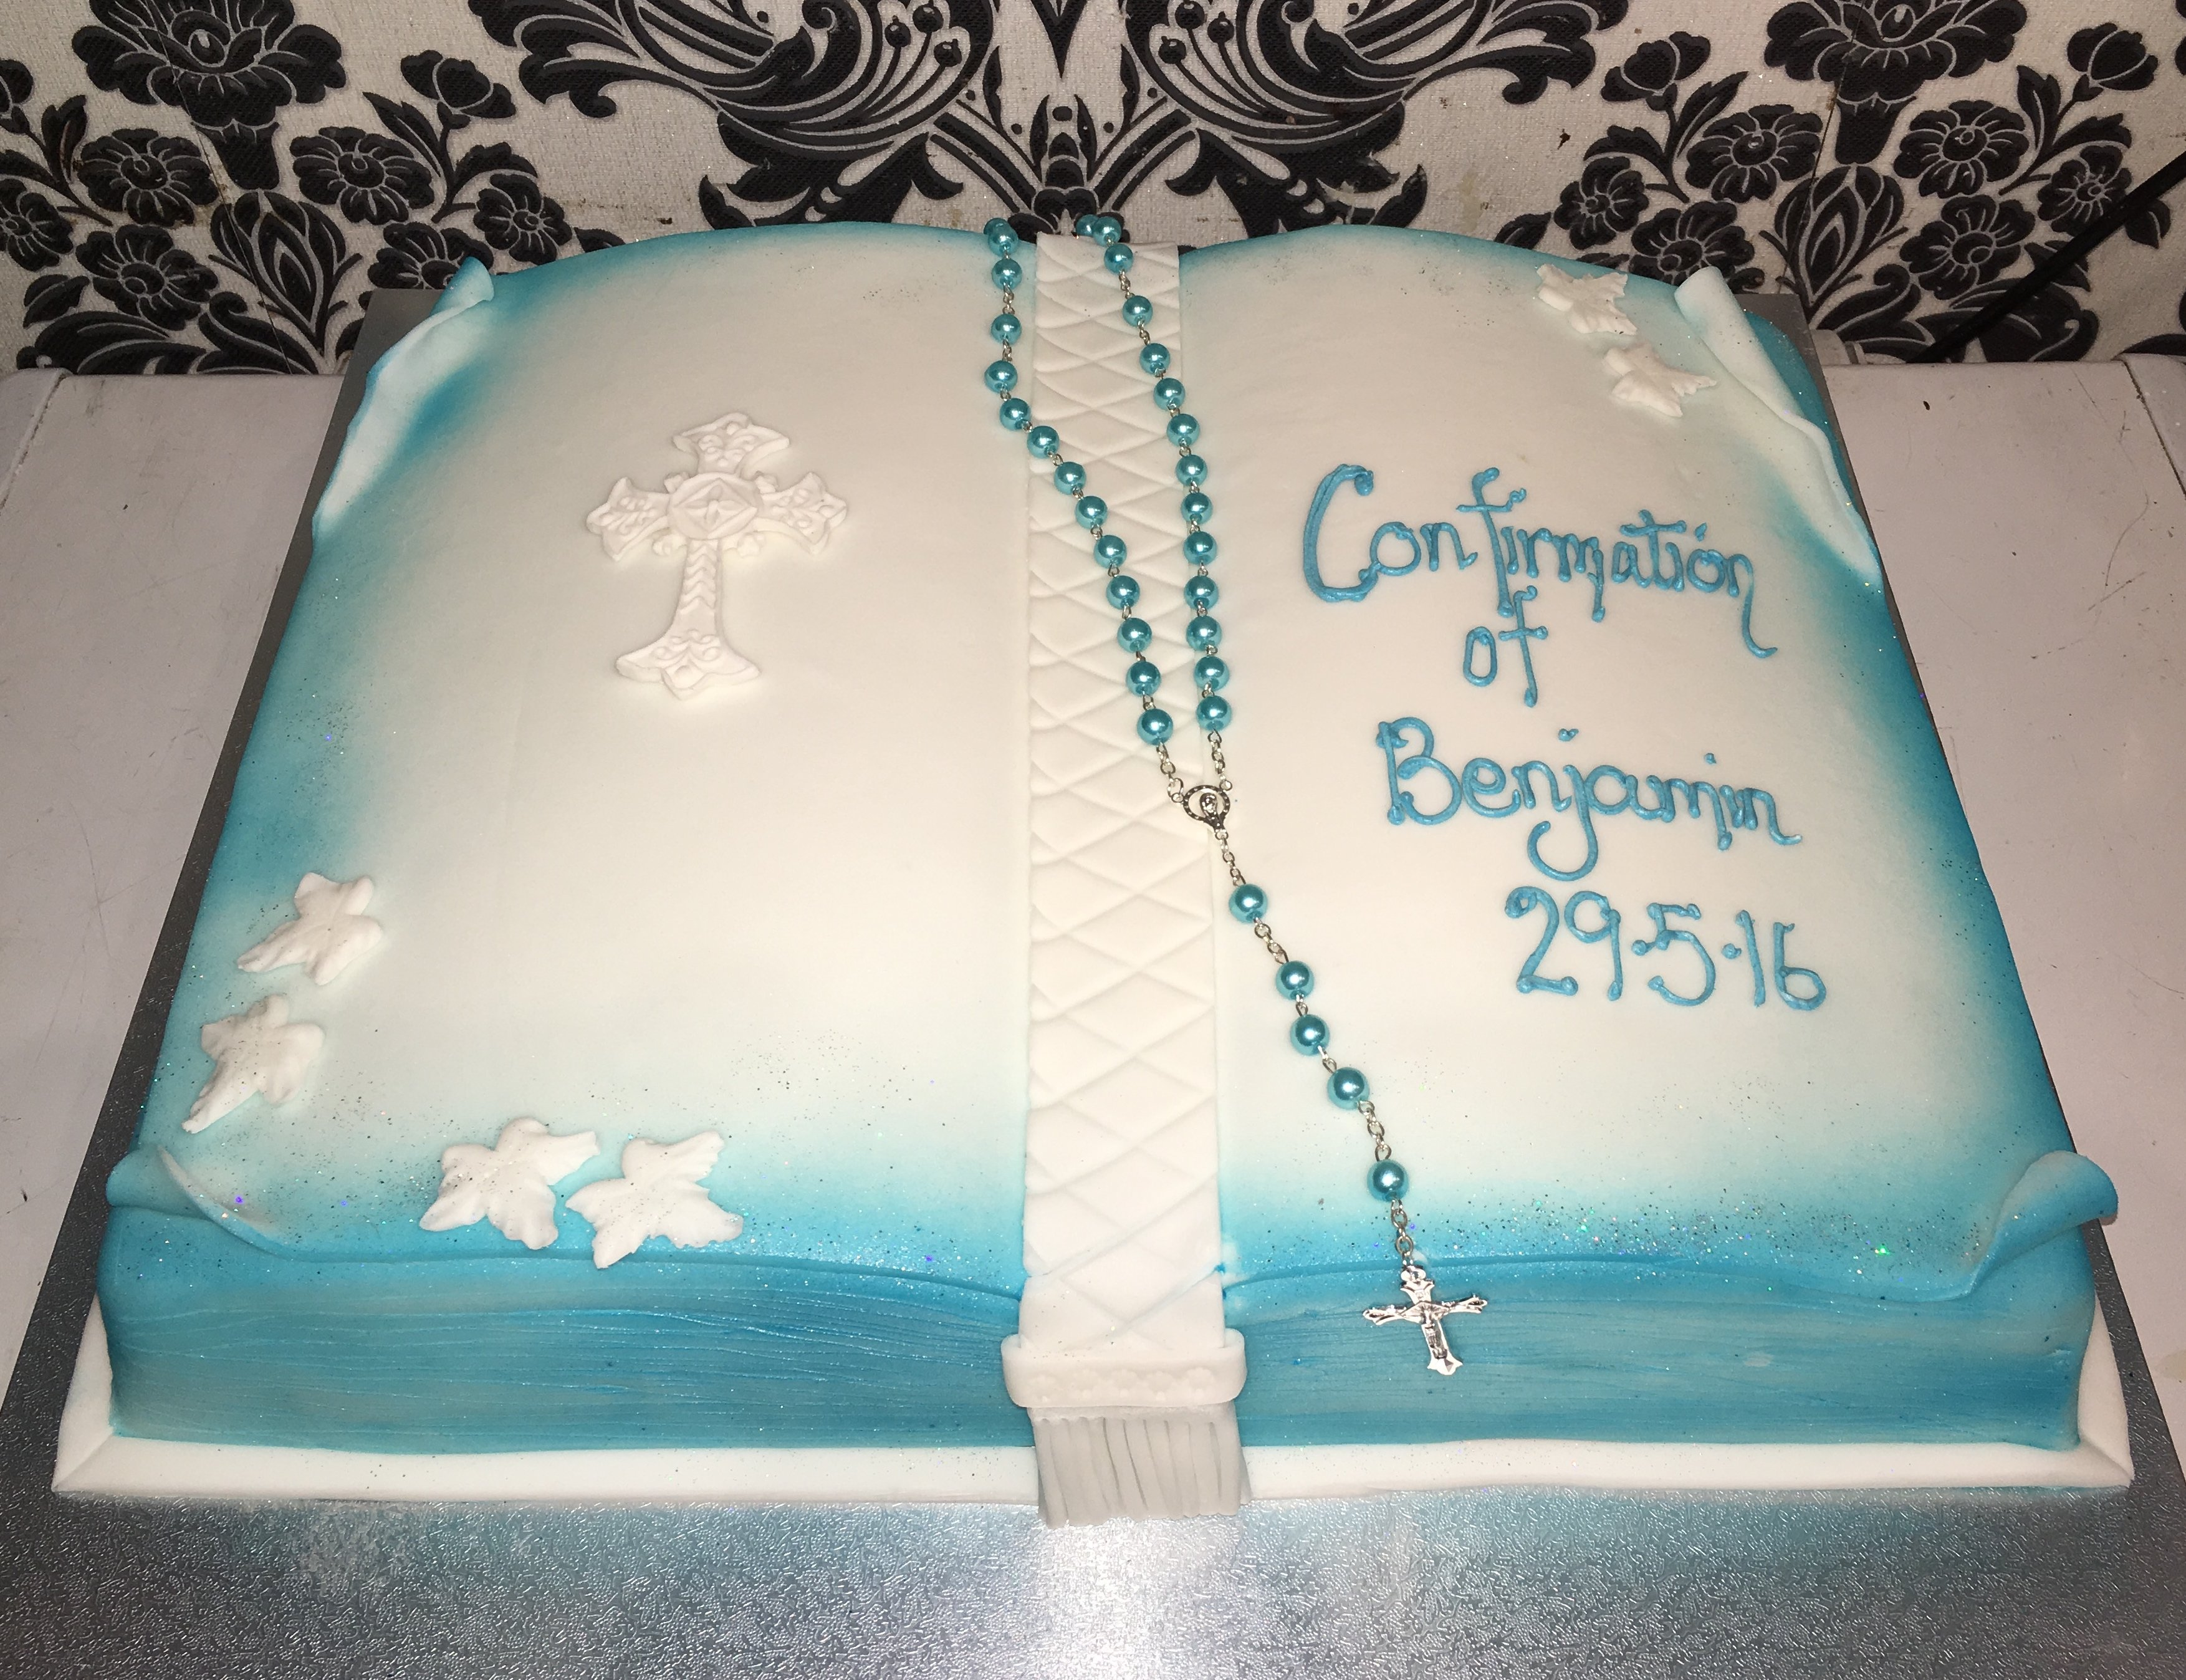 white confirmation book cake with blue edges and white stars